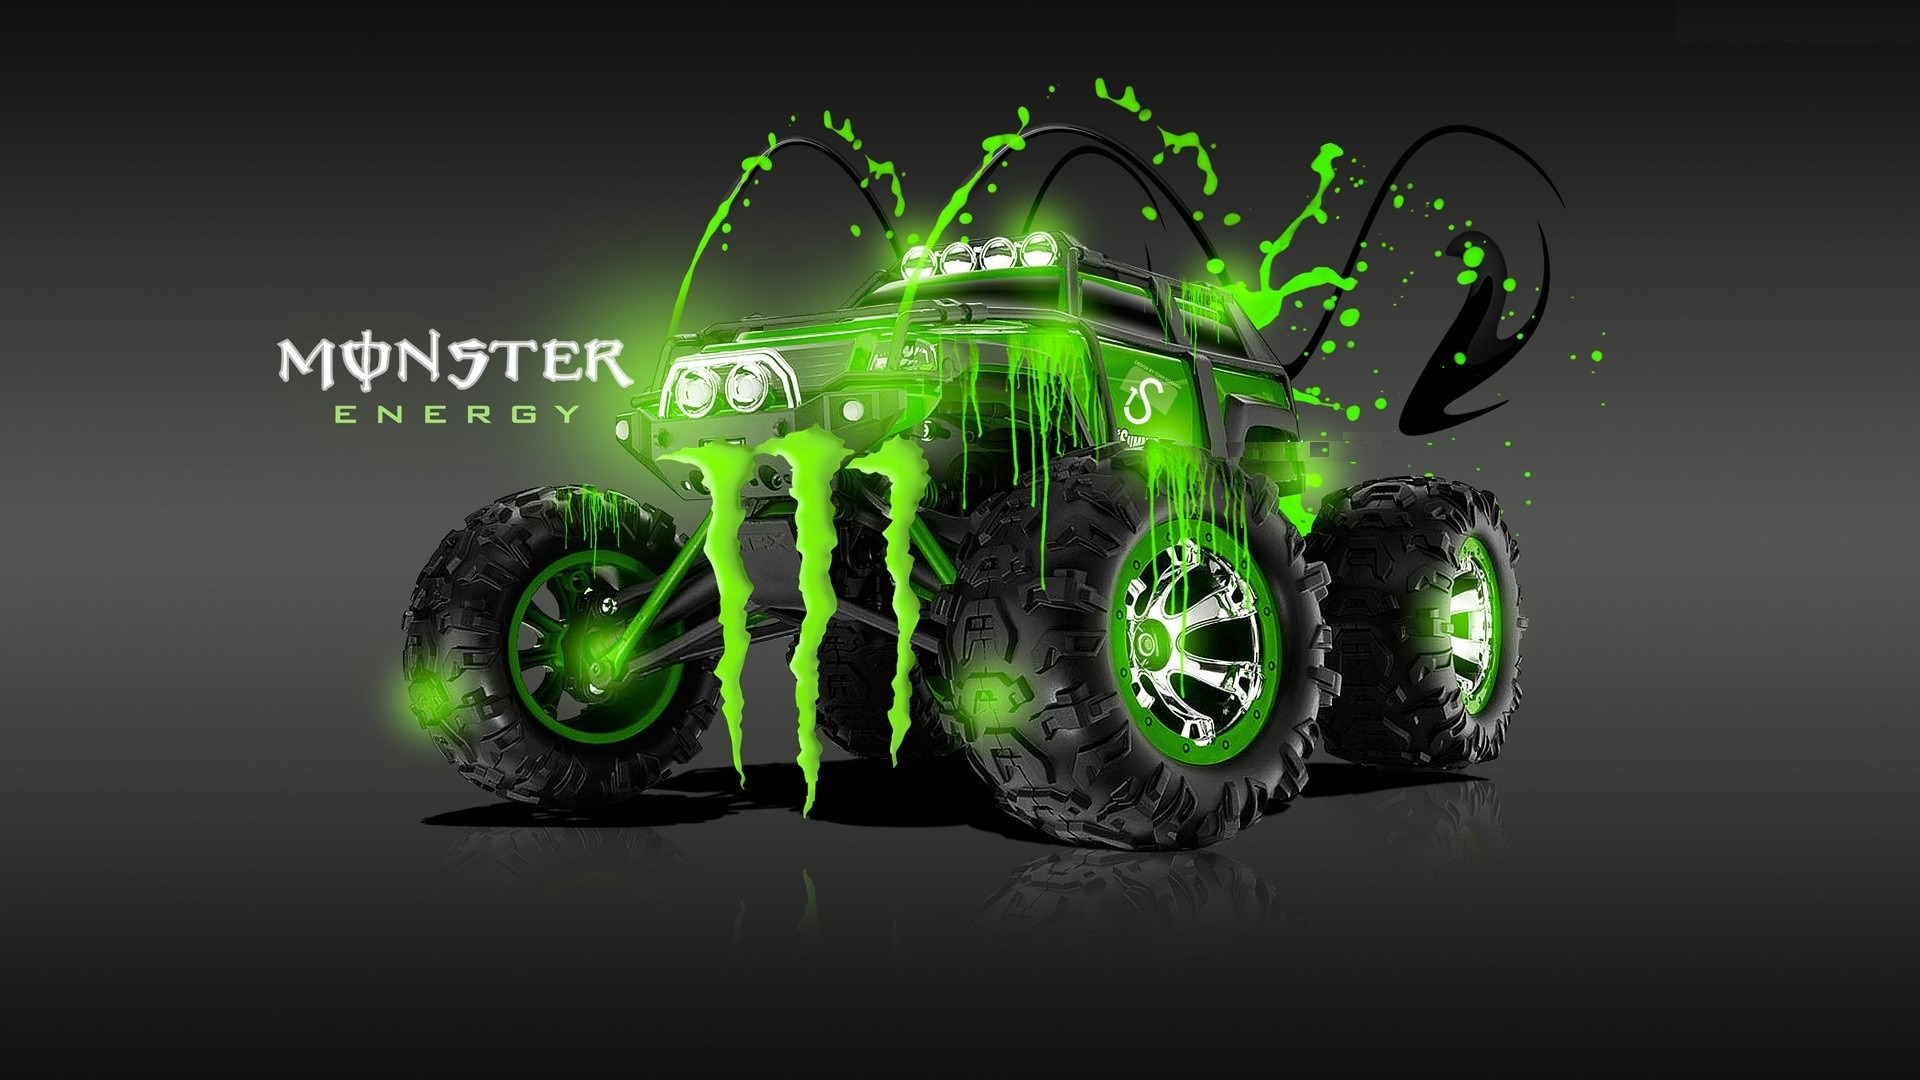 Monster-Energy-HD-Cave-wallpaper-wpc5807332